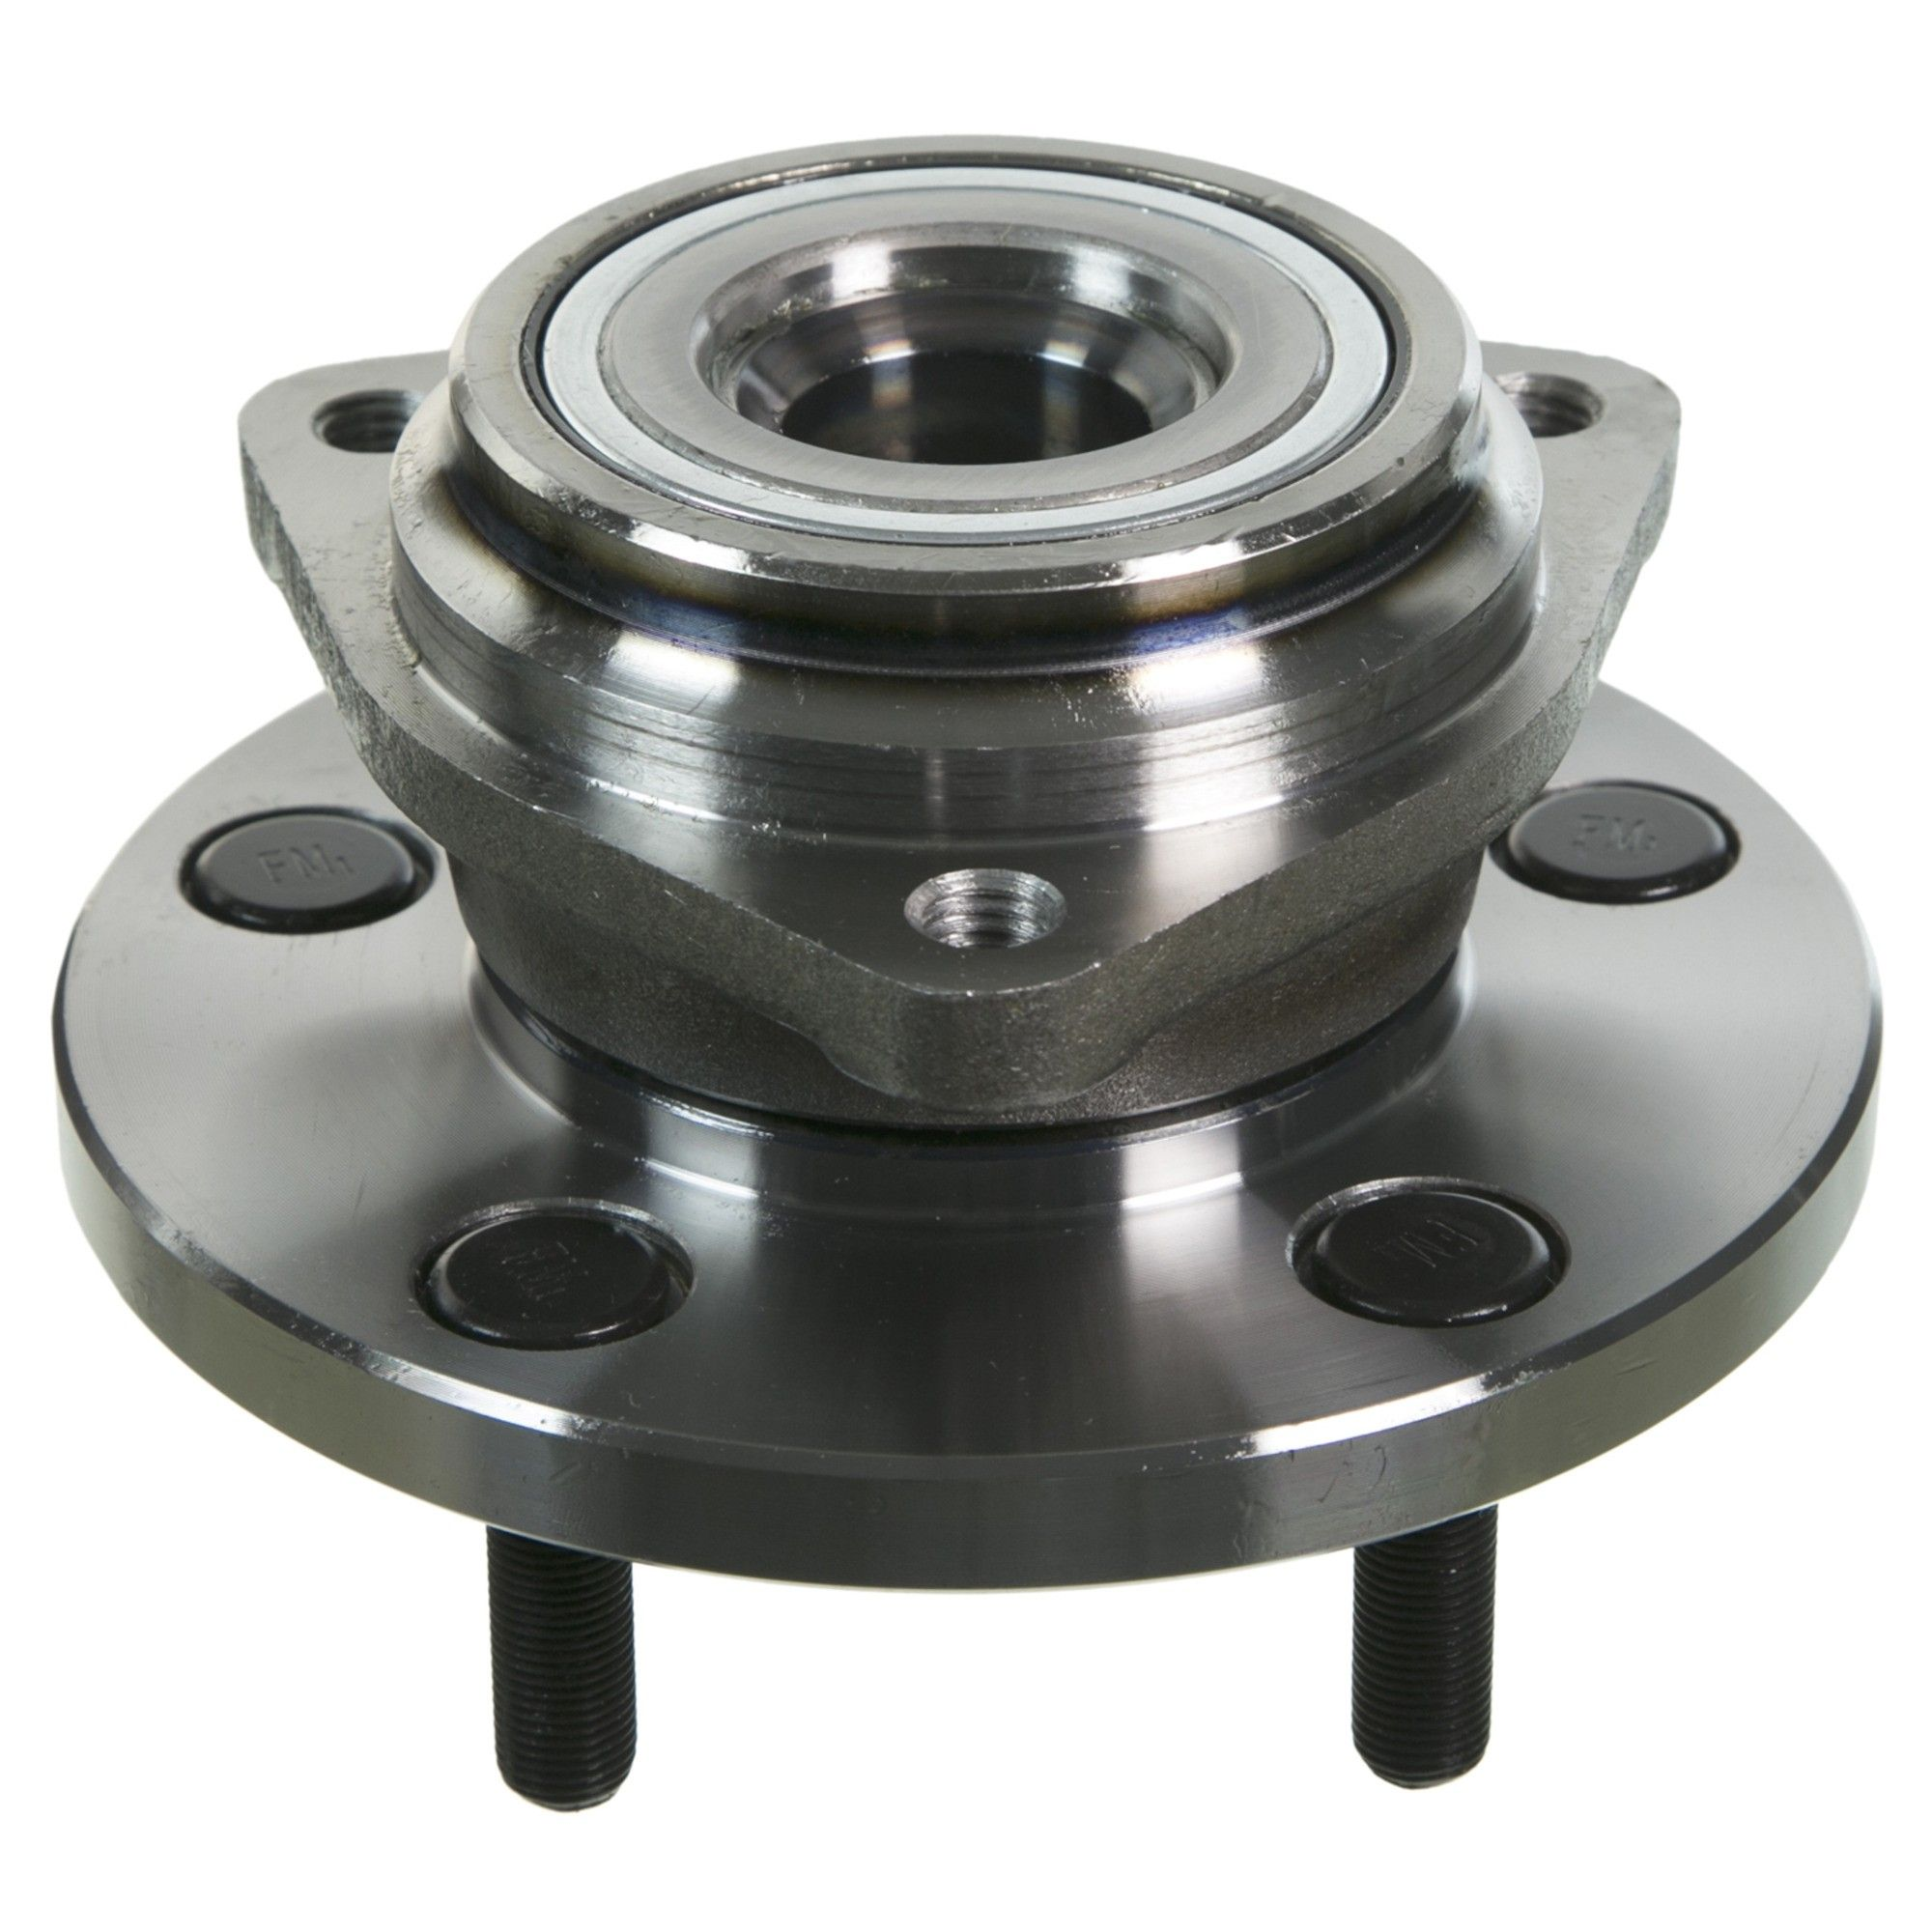 Jeep Grand Cherokee Wheel Bearing and Hub Assembly Replacement